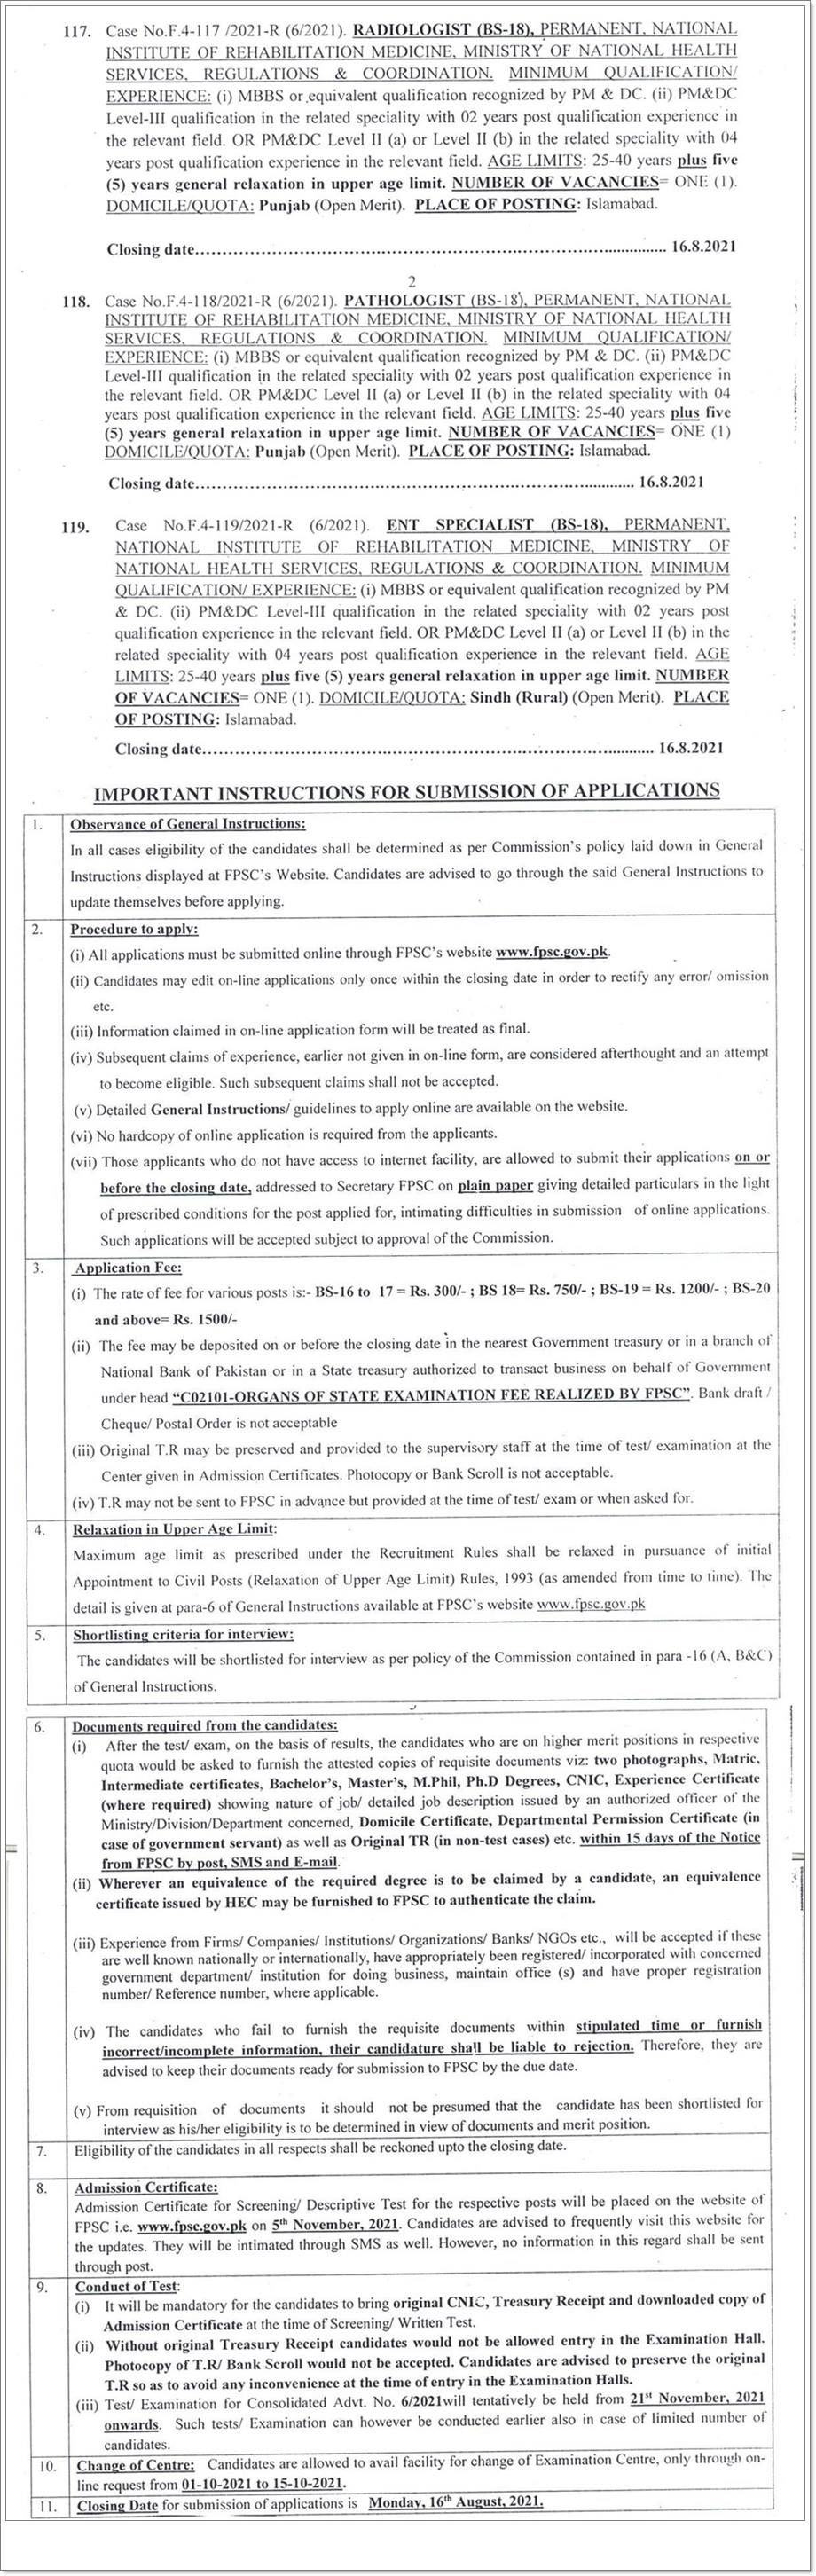 Ministry of National Health Services FPSC Jobs 2021